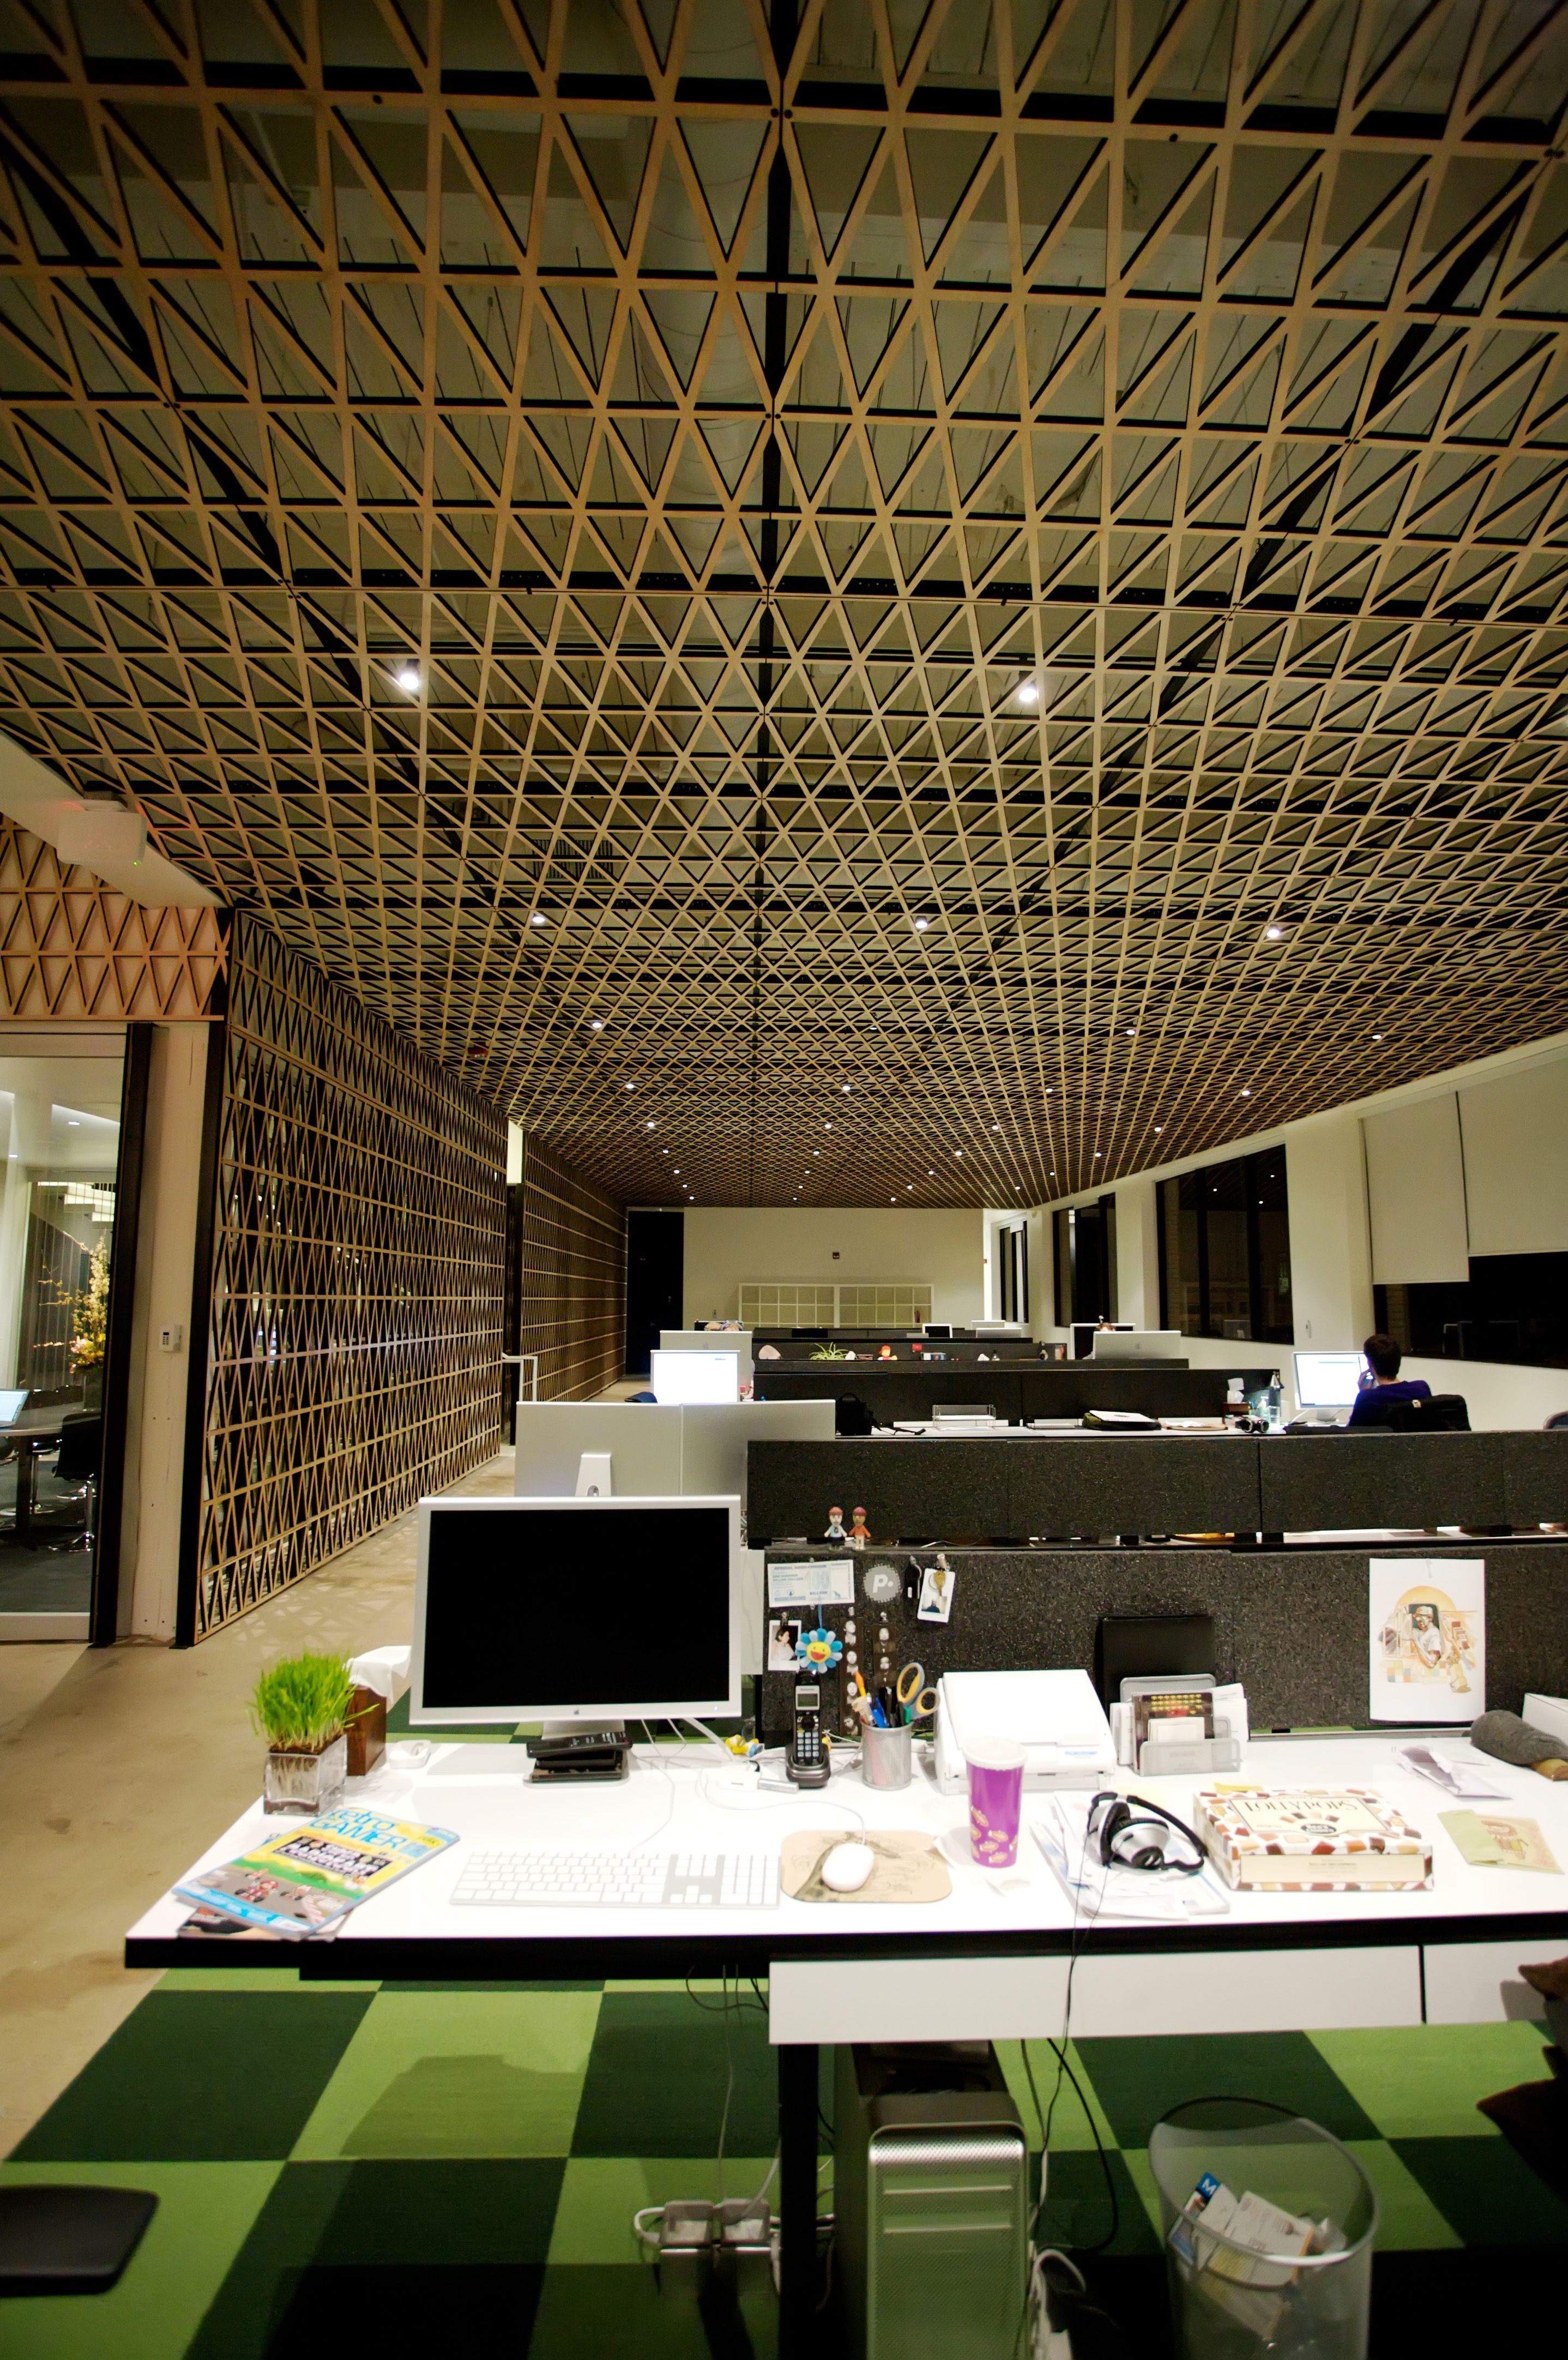 Room Lighting Design Software: Awesome Ceilings With Sweet Rugs.